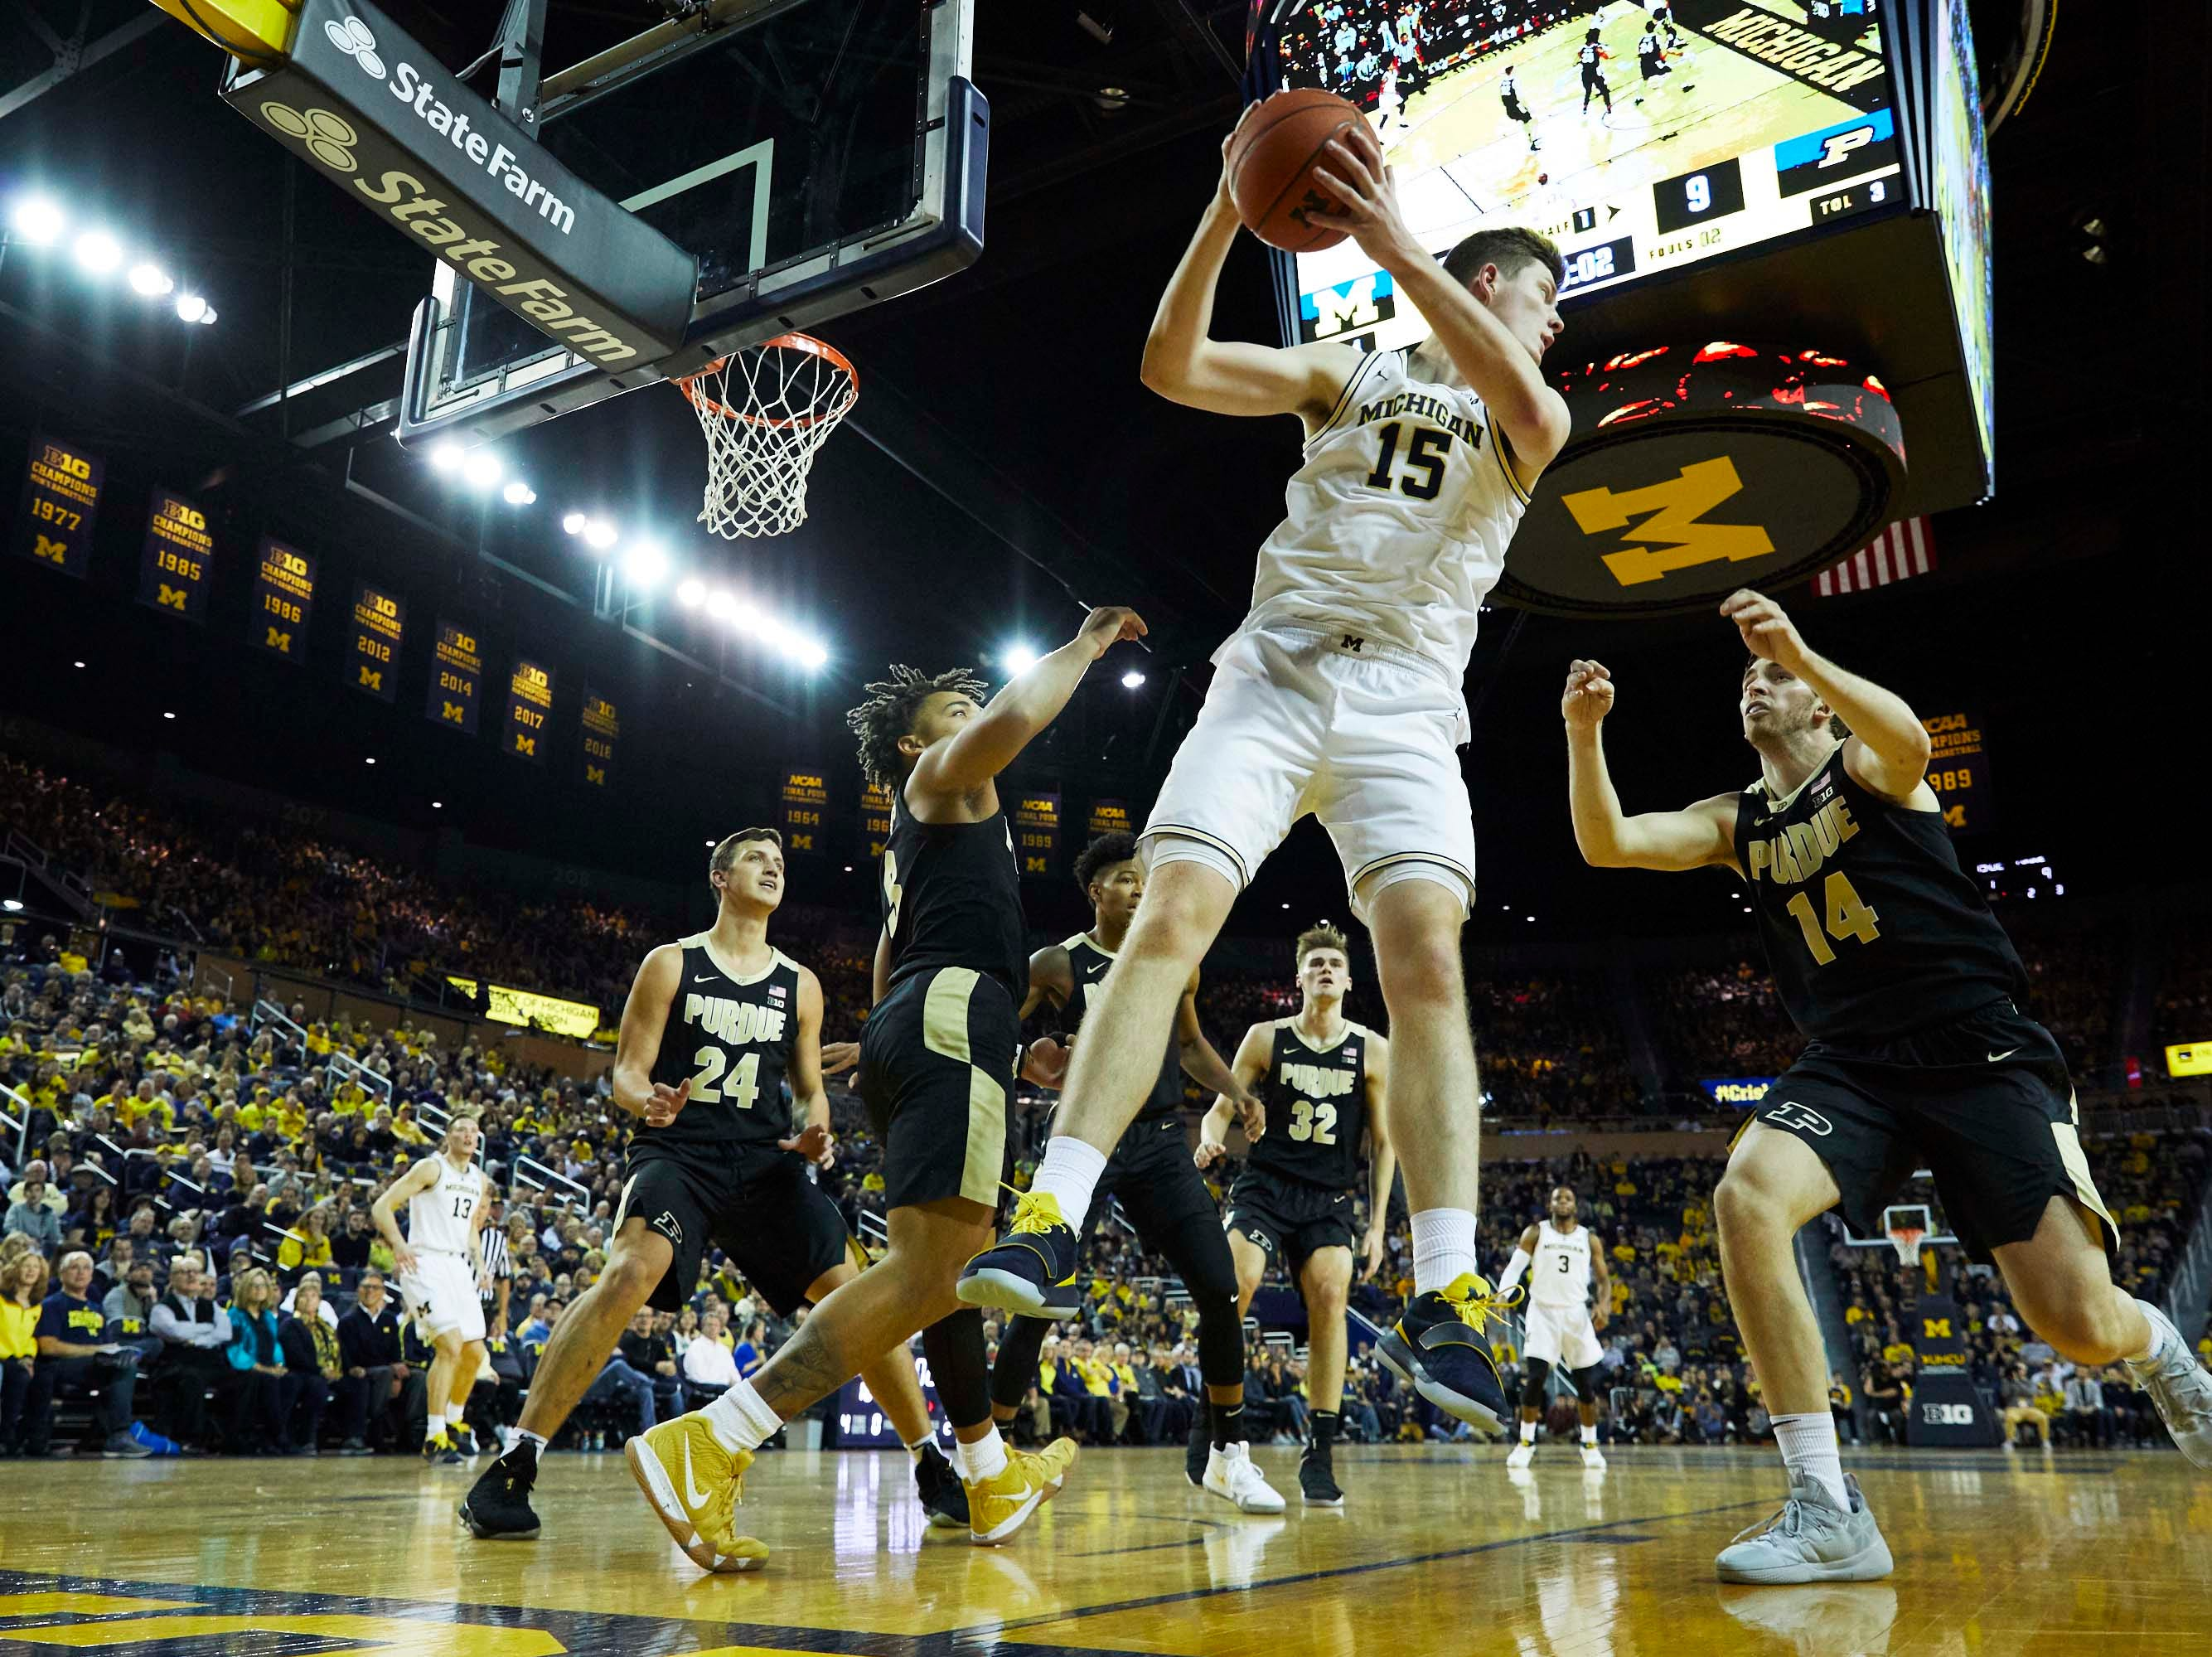 Dec 1, 2018; Ann Arbor, MI, USA; Michigan Wolverines center Jon Teske (15) before the race in the first half against the Purdue Boilermakers at Crisler Center. Mandatory Credit: Rick Osentoski-USA TODAY Sports